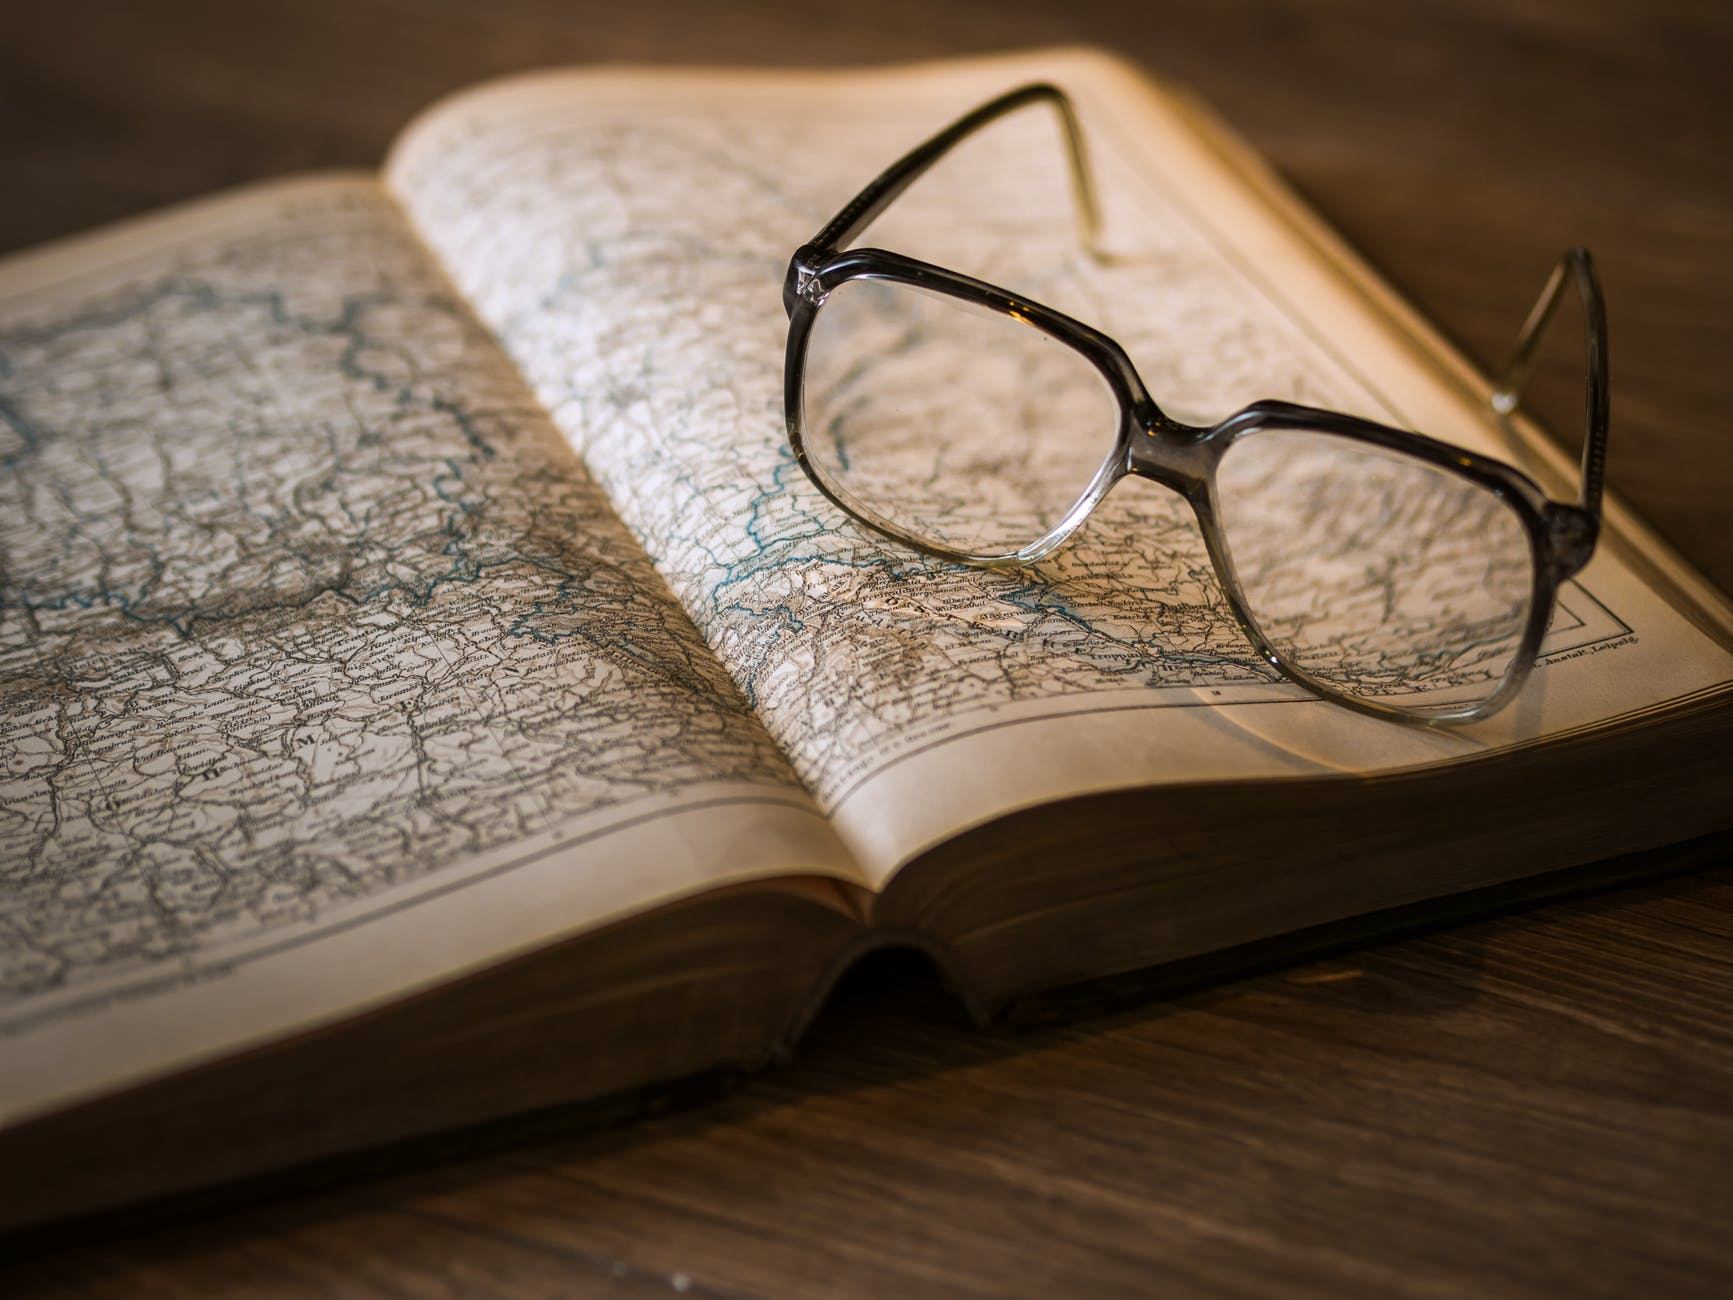 knowledge-book-library-glasses-159743.jpeg